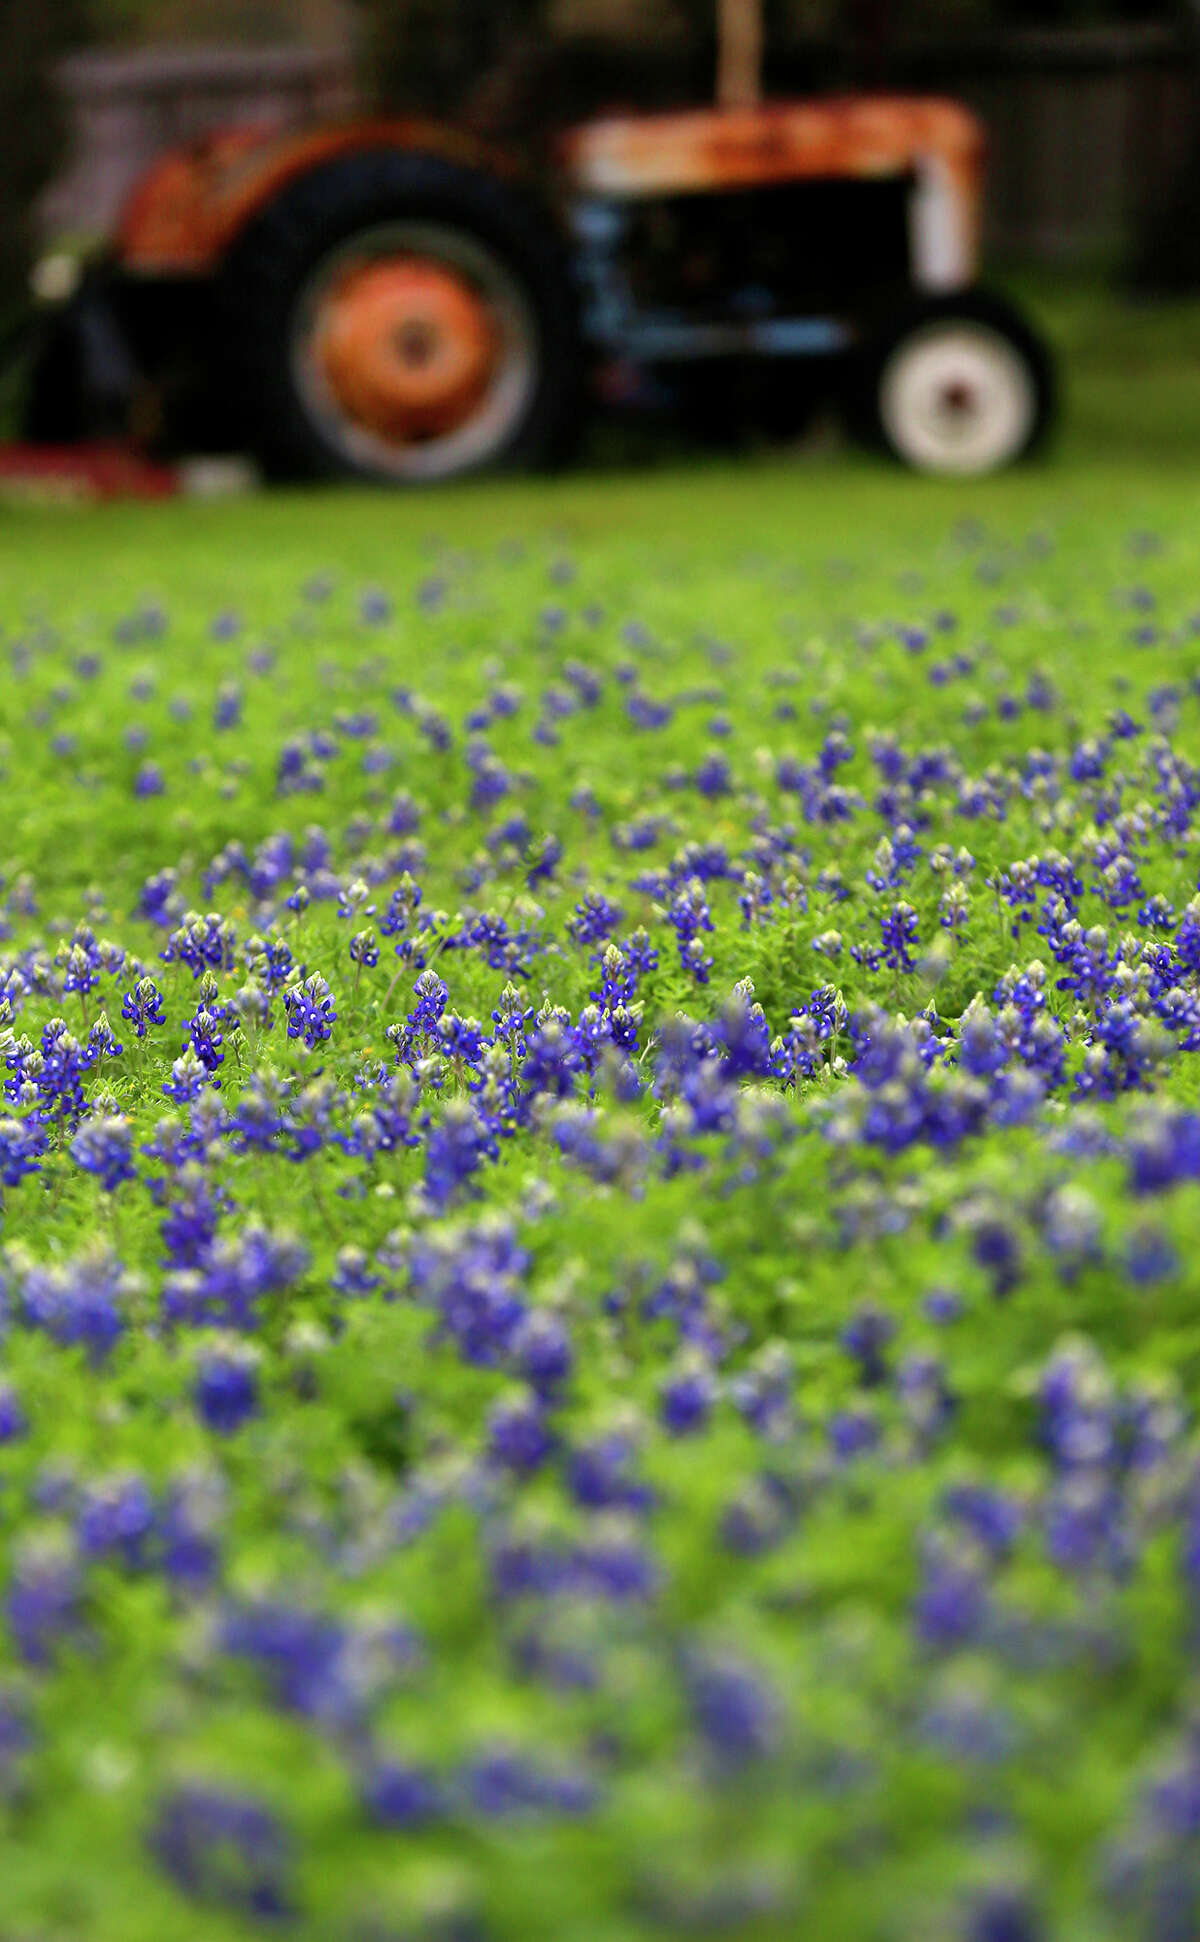 Bluebonnets bloom in a field Tuesday March 17, 2015 near an old tractor on the 13,000 block of Jones Maltsberger. The first day of spring is Friday March 20, 2015. Recent rainfall has area flowers and trees blooming.